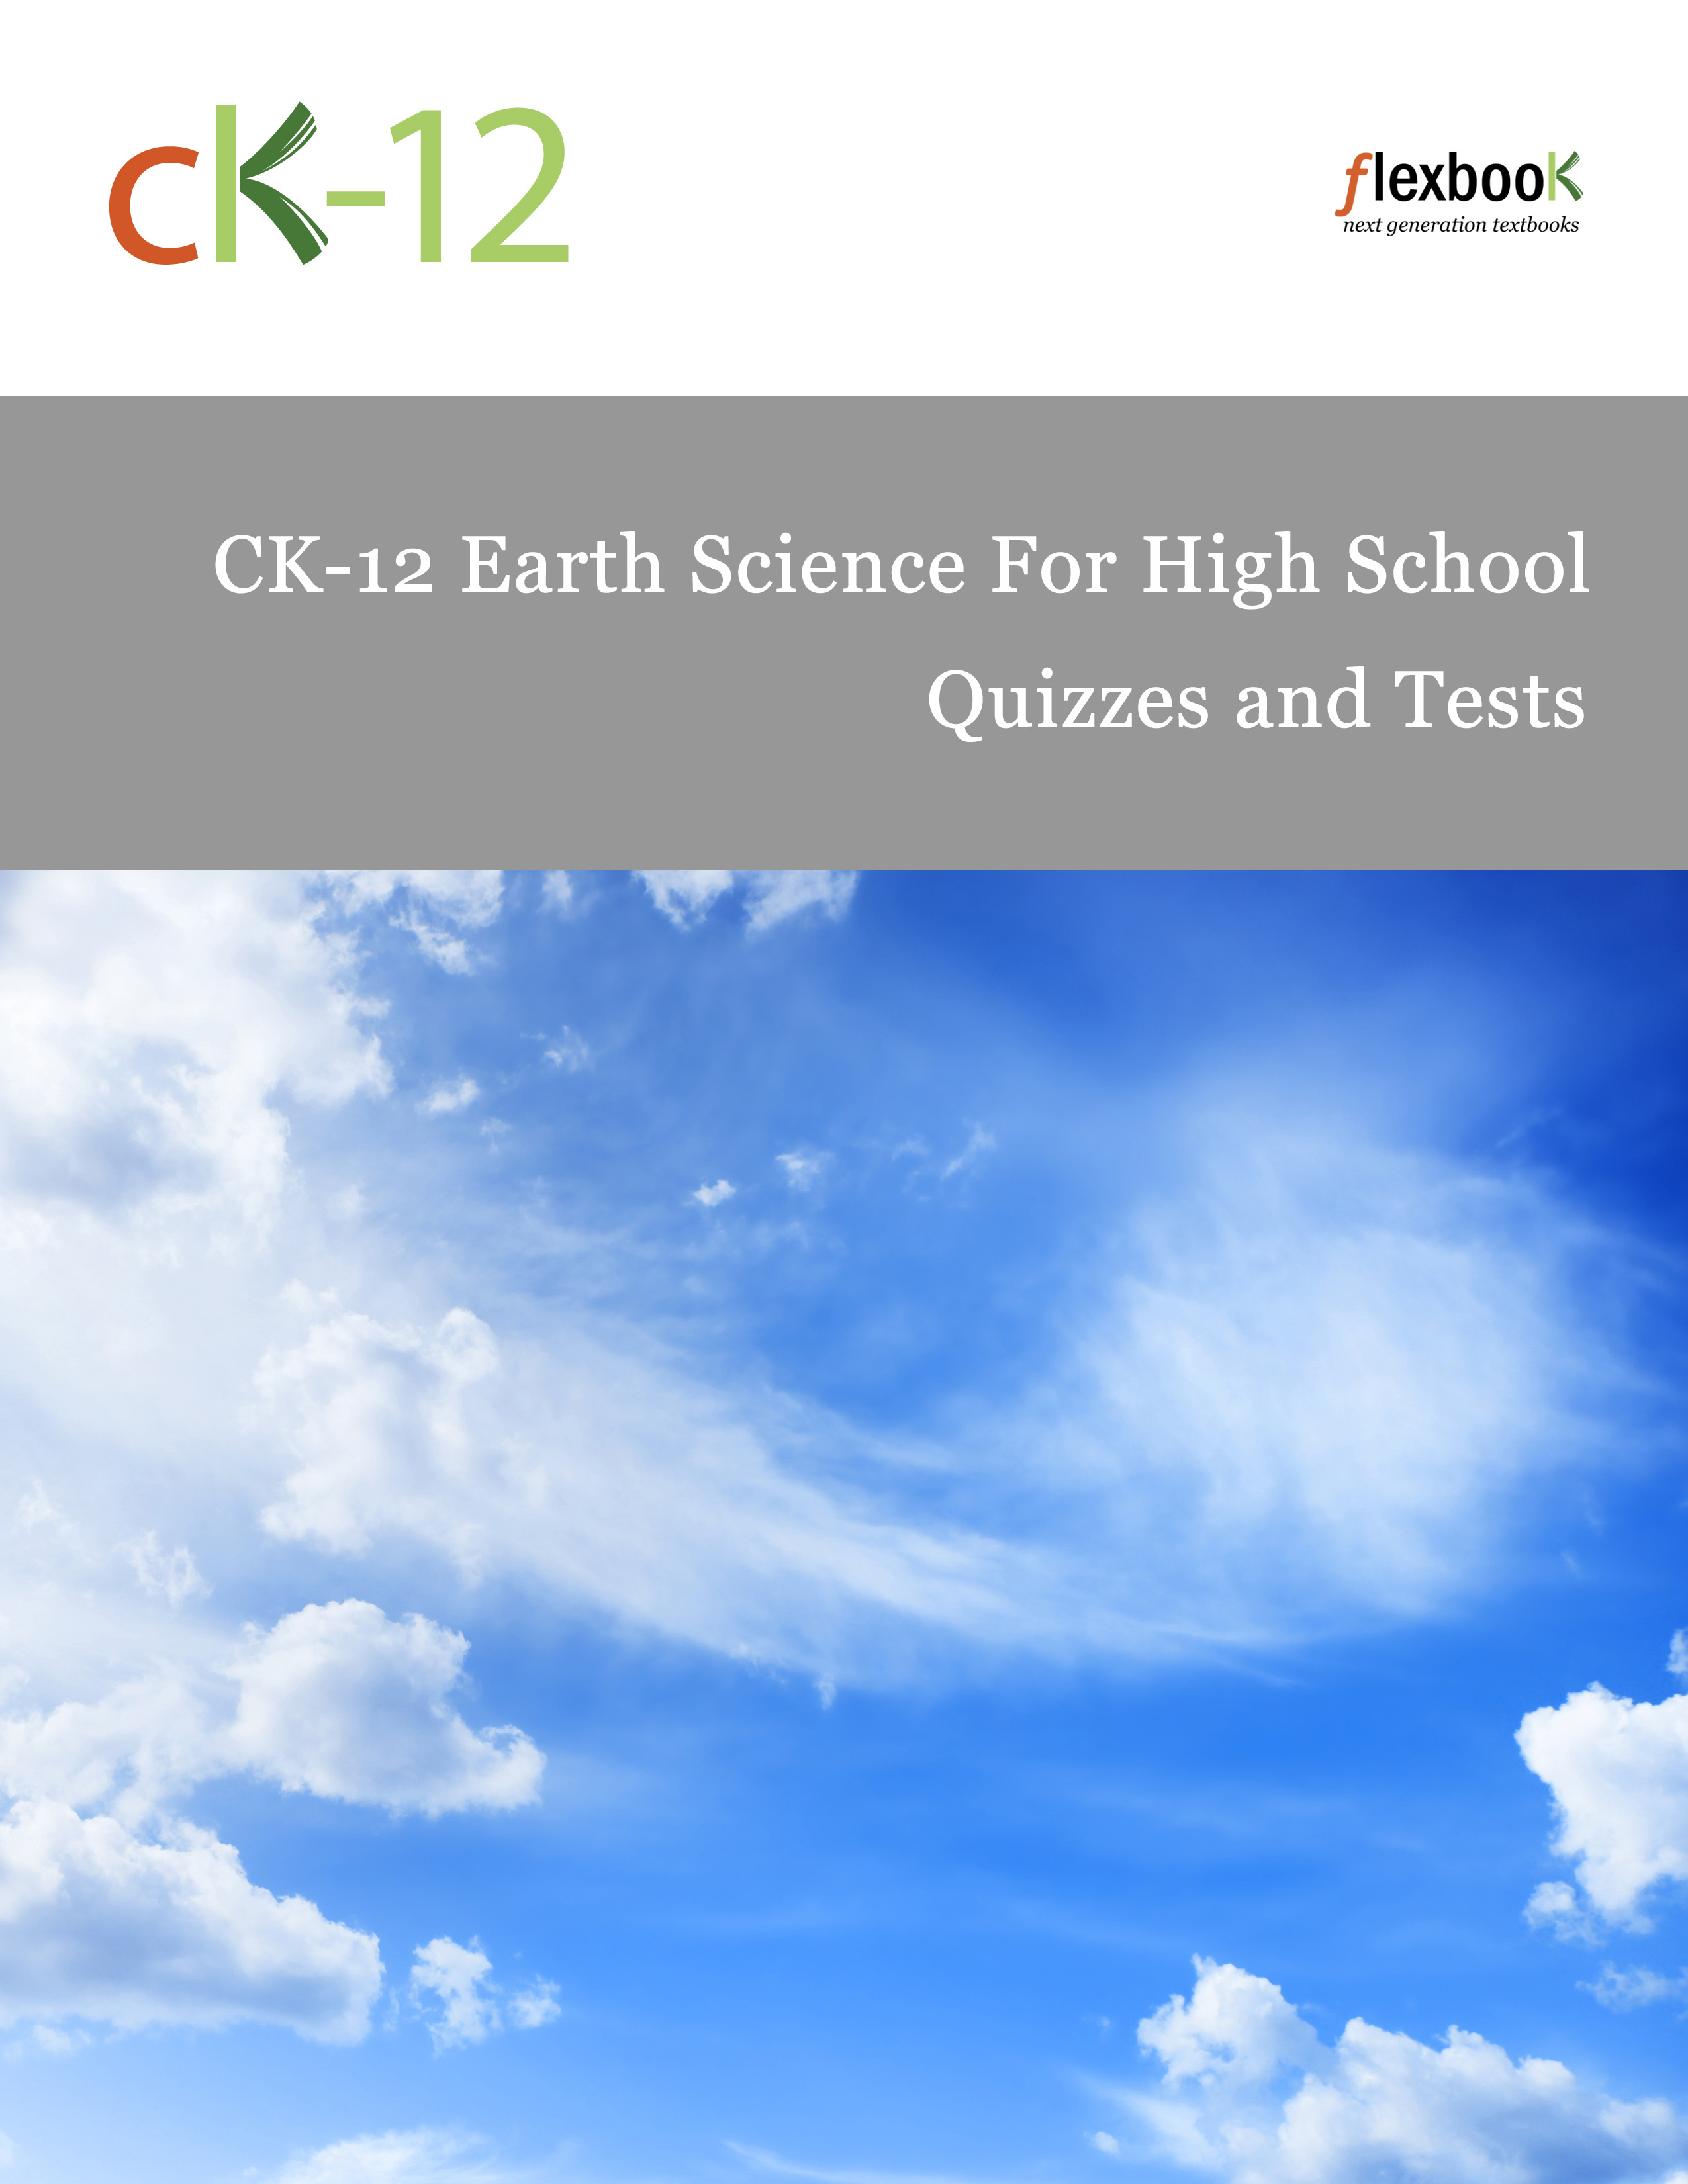 Worksheets High School Earth Science Worksheets ck 12 earth science for high school workbook foundation